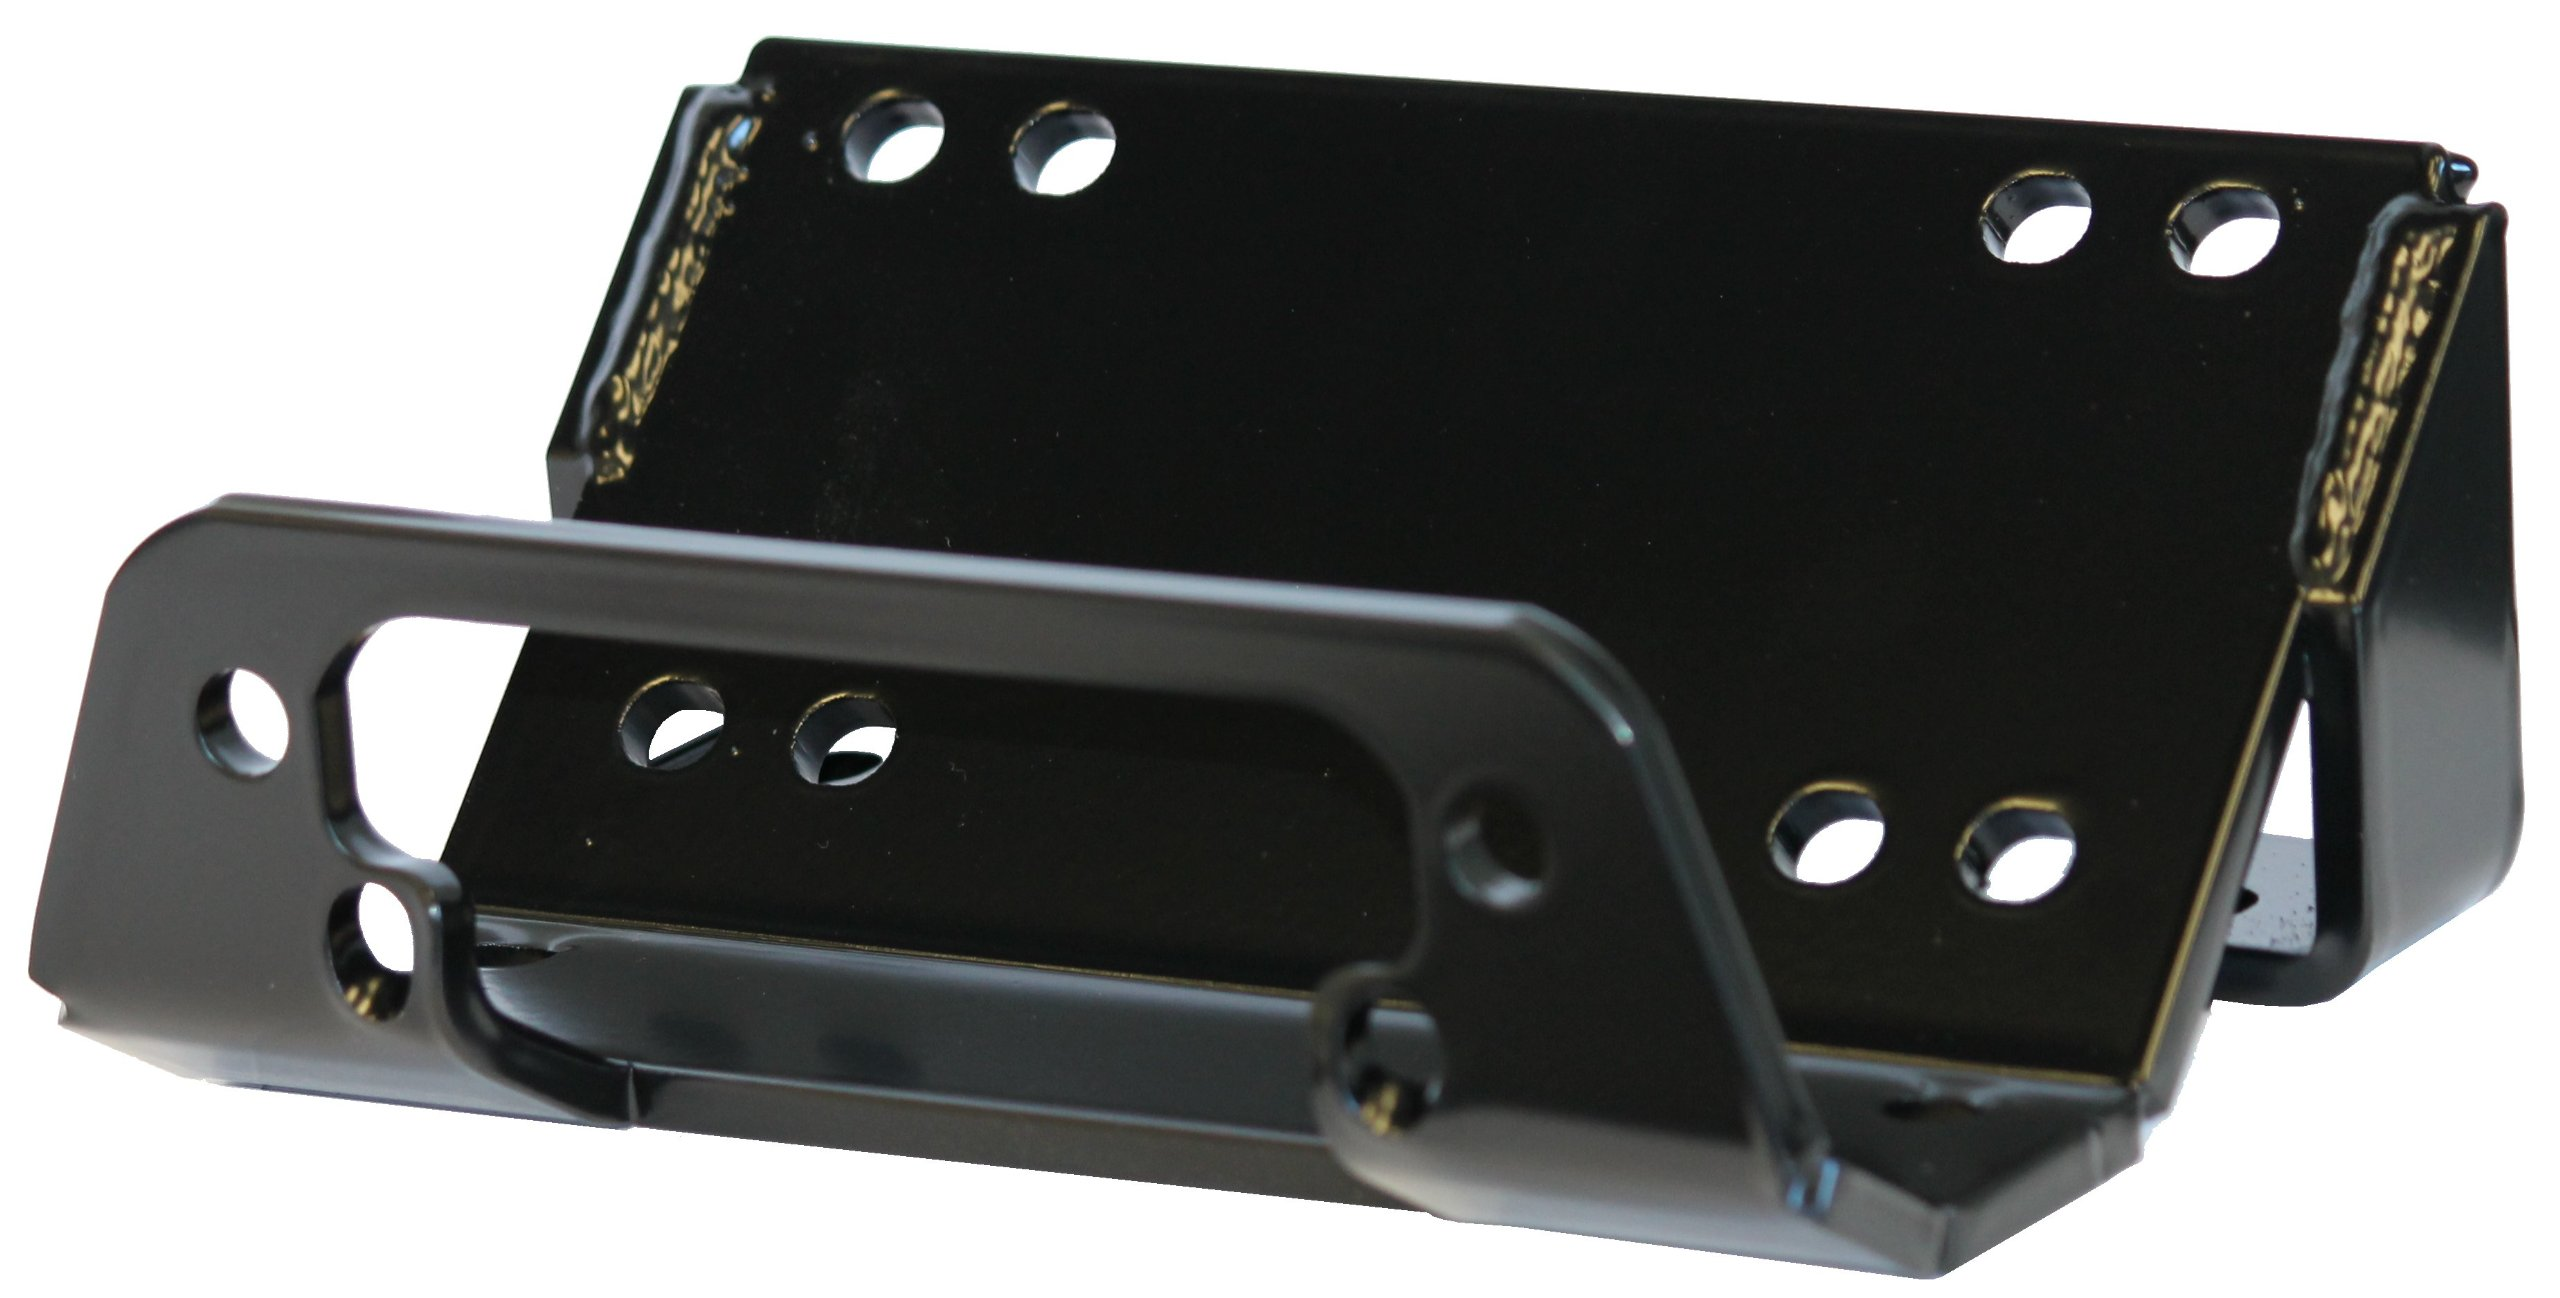 VIPER UTV Winch Mount Plate Kit - Kawasaki Teryx 4 (4-seater) and Teryx 4 750 by MotoAlliance